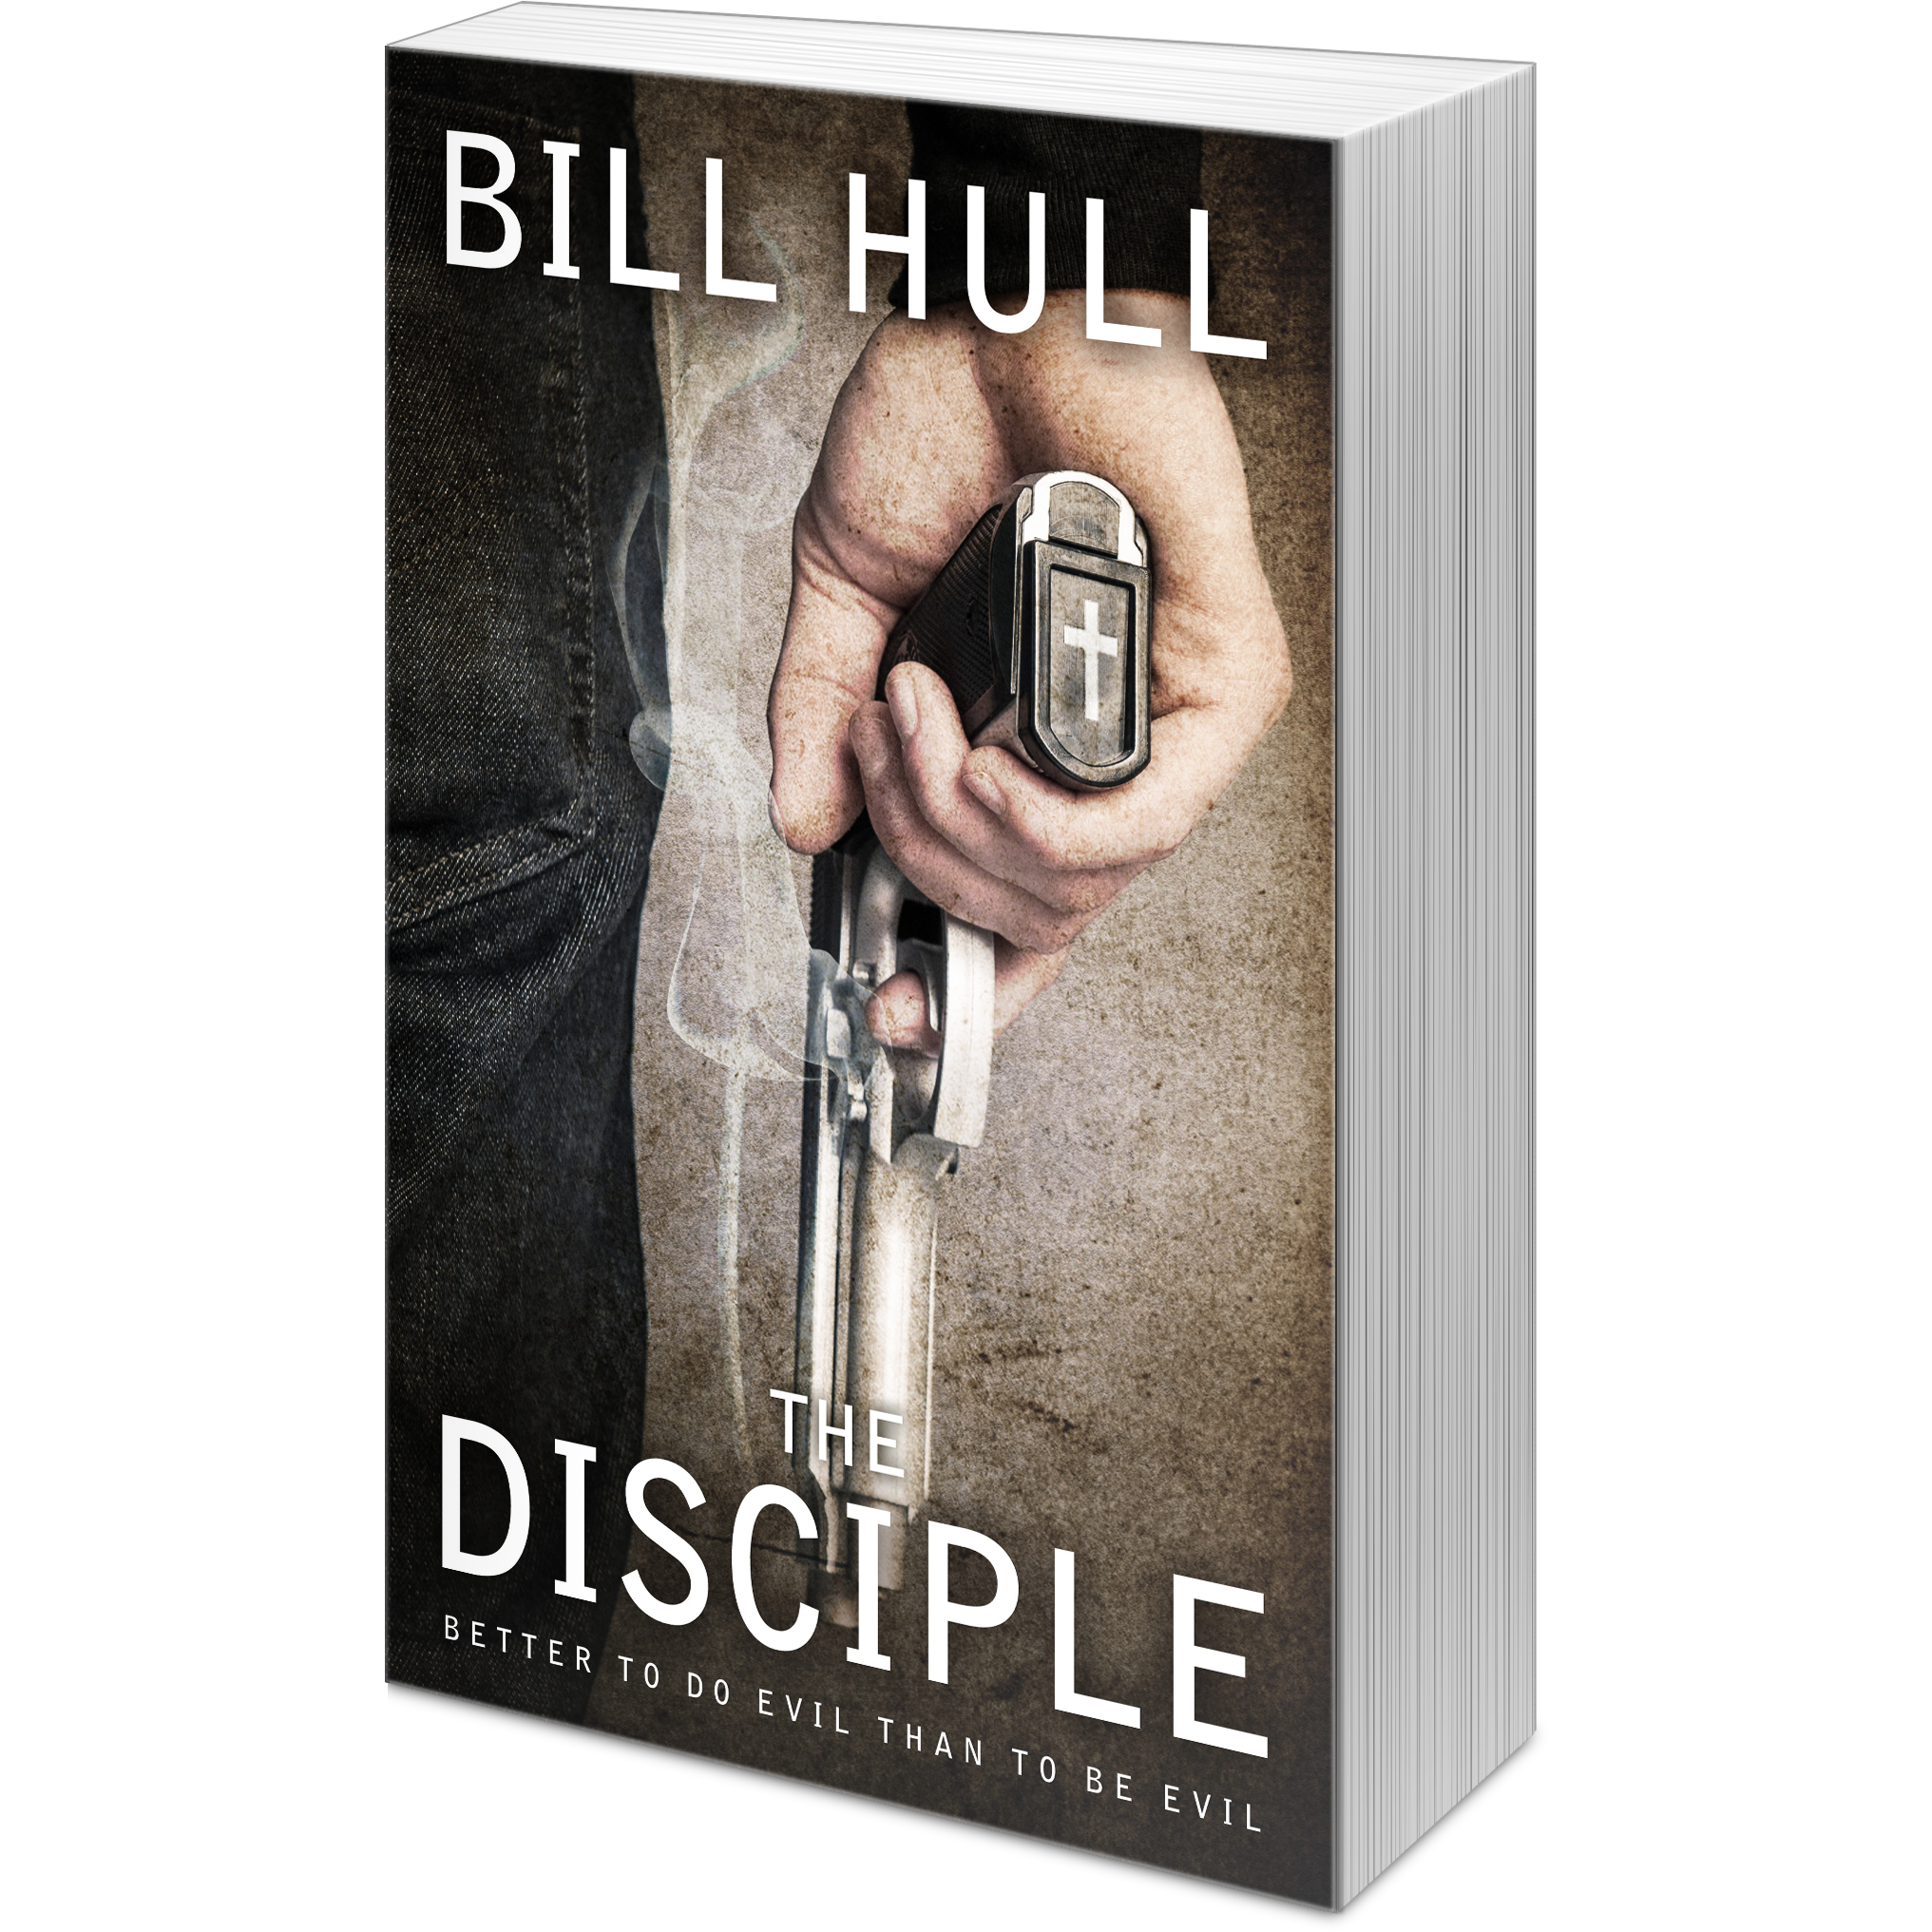 The Disciple   A fictional thriller by Bill Hull   More »